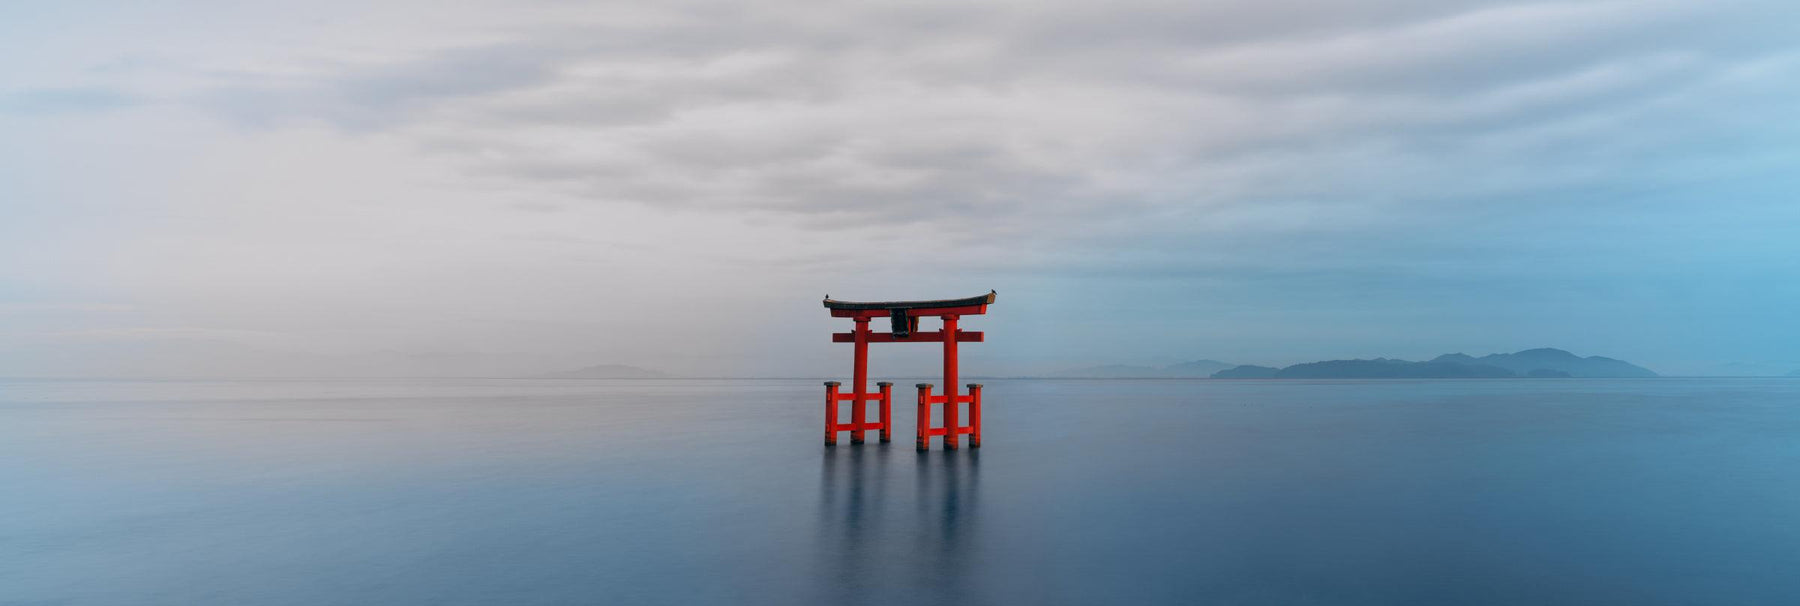 Red Torii gate standing in a calm blue lake in Japan with hills in the background